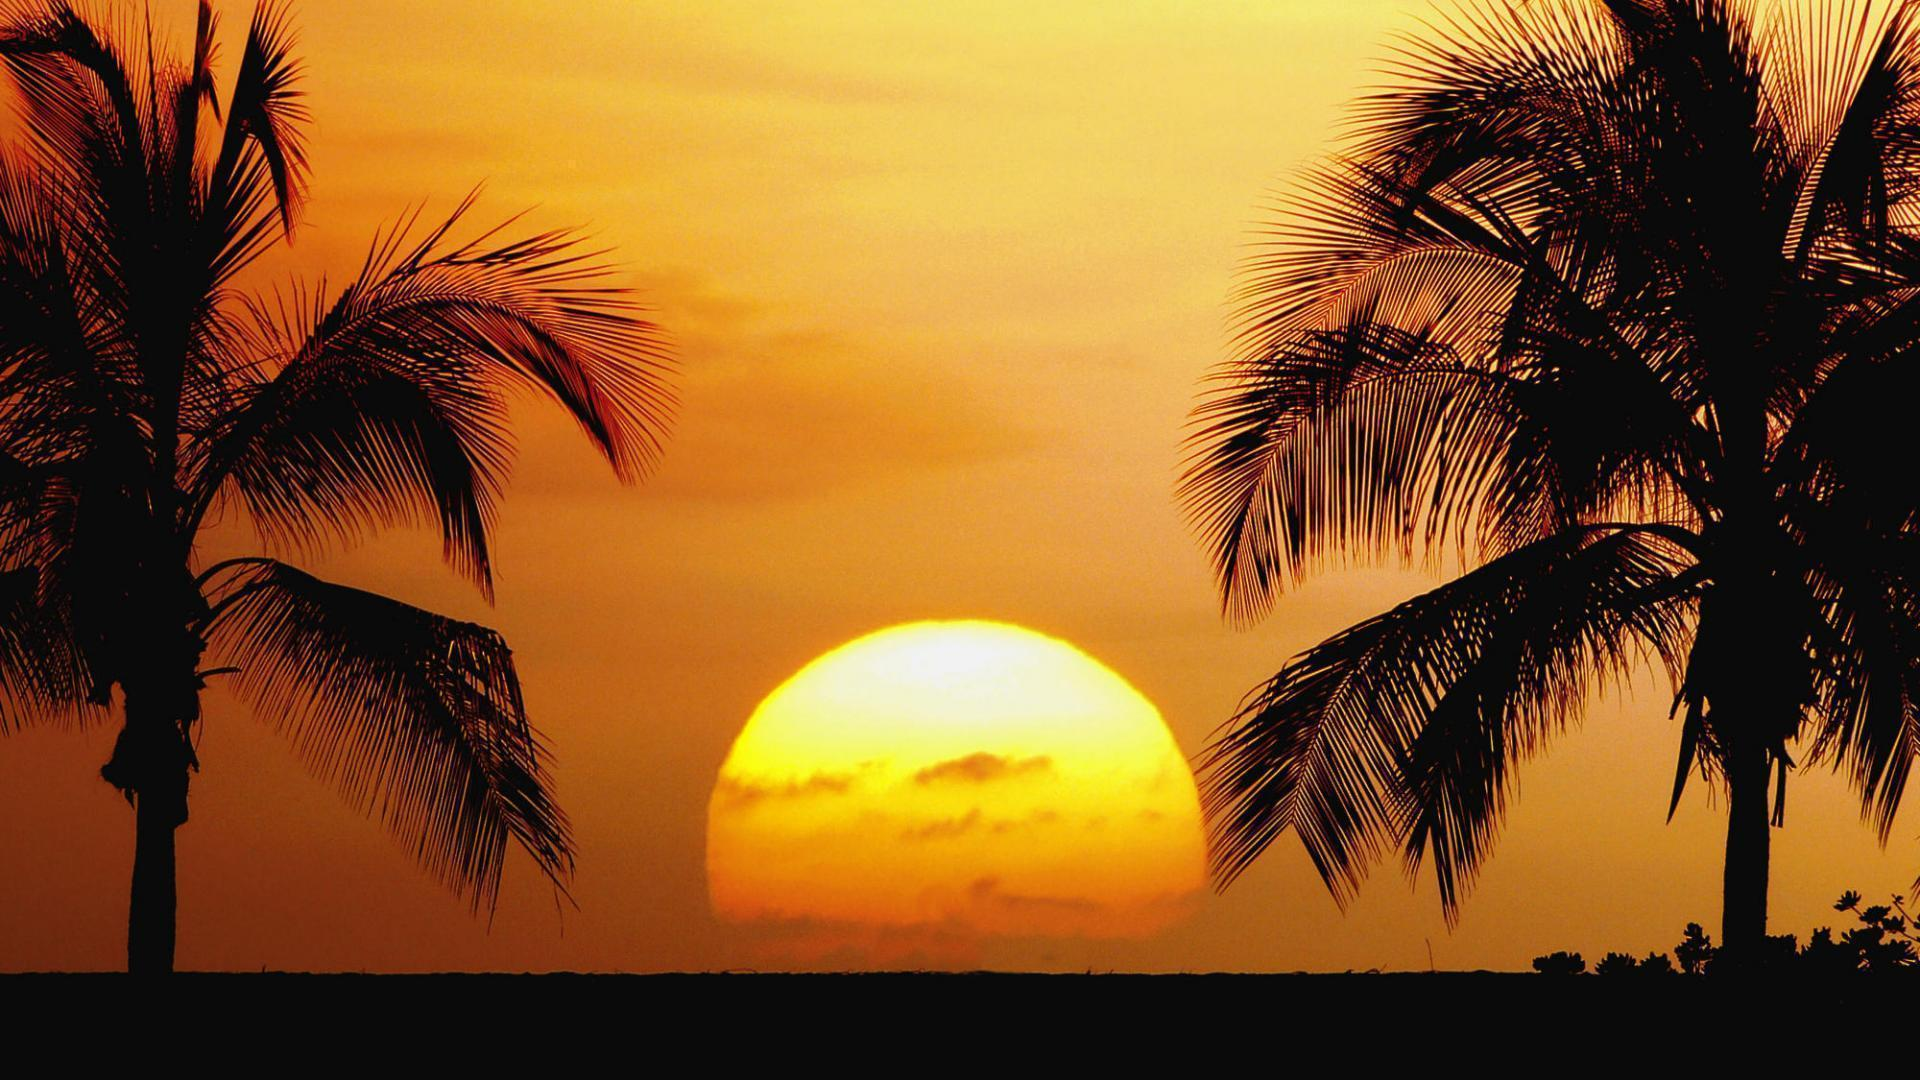 tropical landscape wallpapers - photo #49